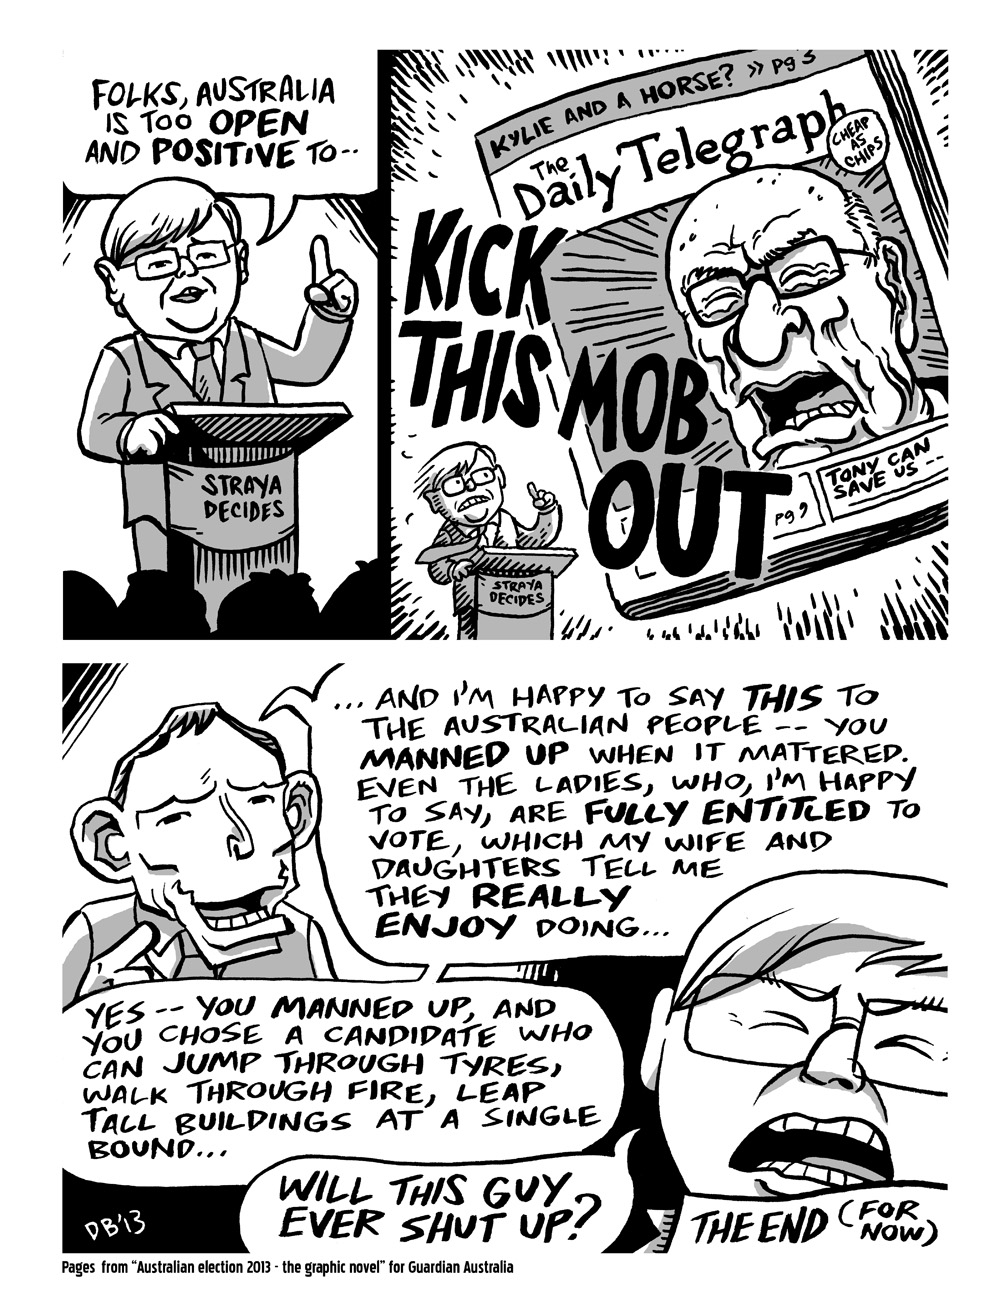 Comics about the 2013 federal election for The Guardian.